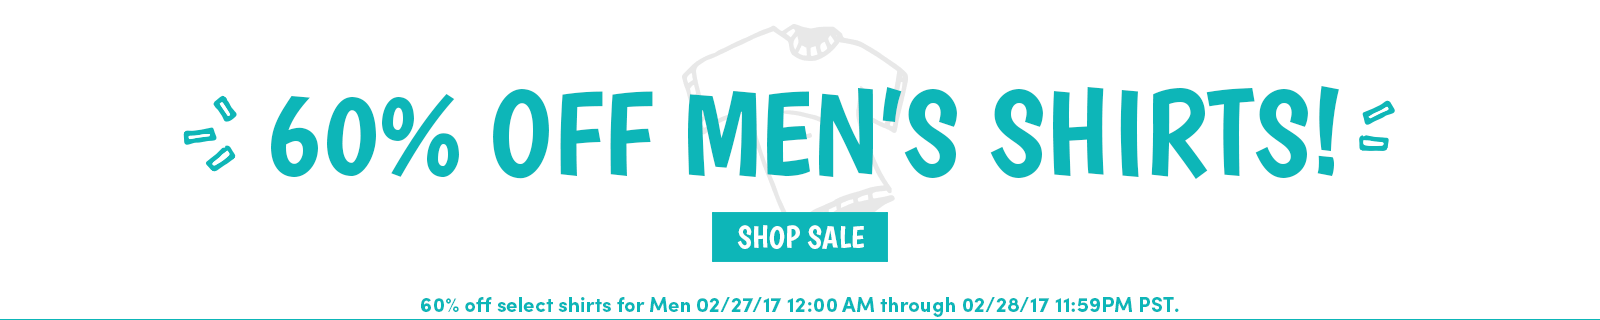 Men's Shirts Sale 60 Percent Off